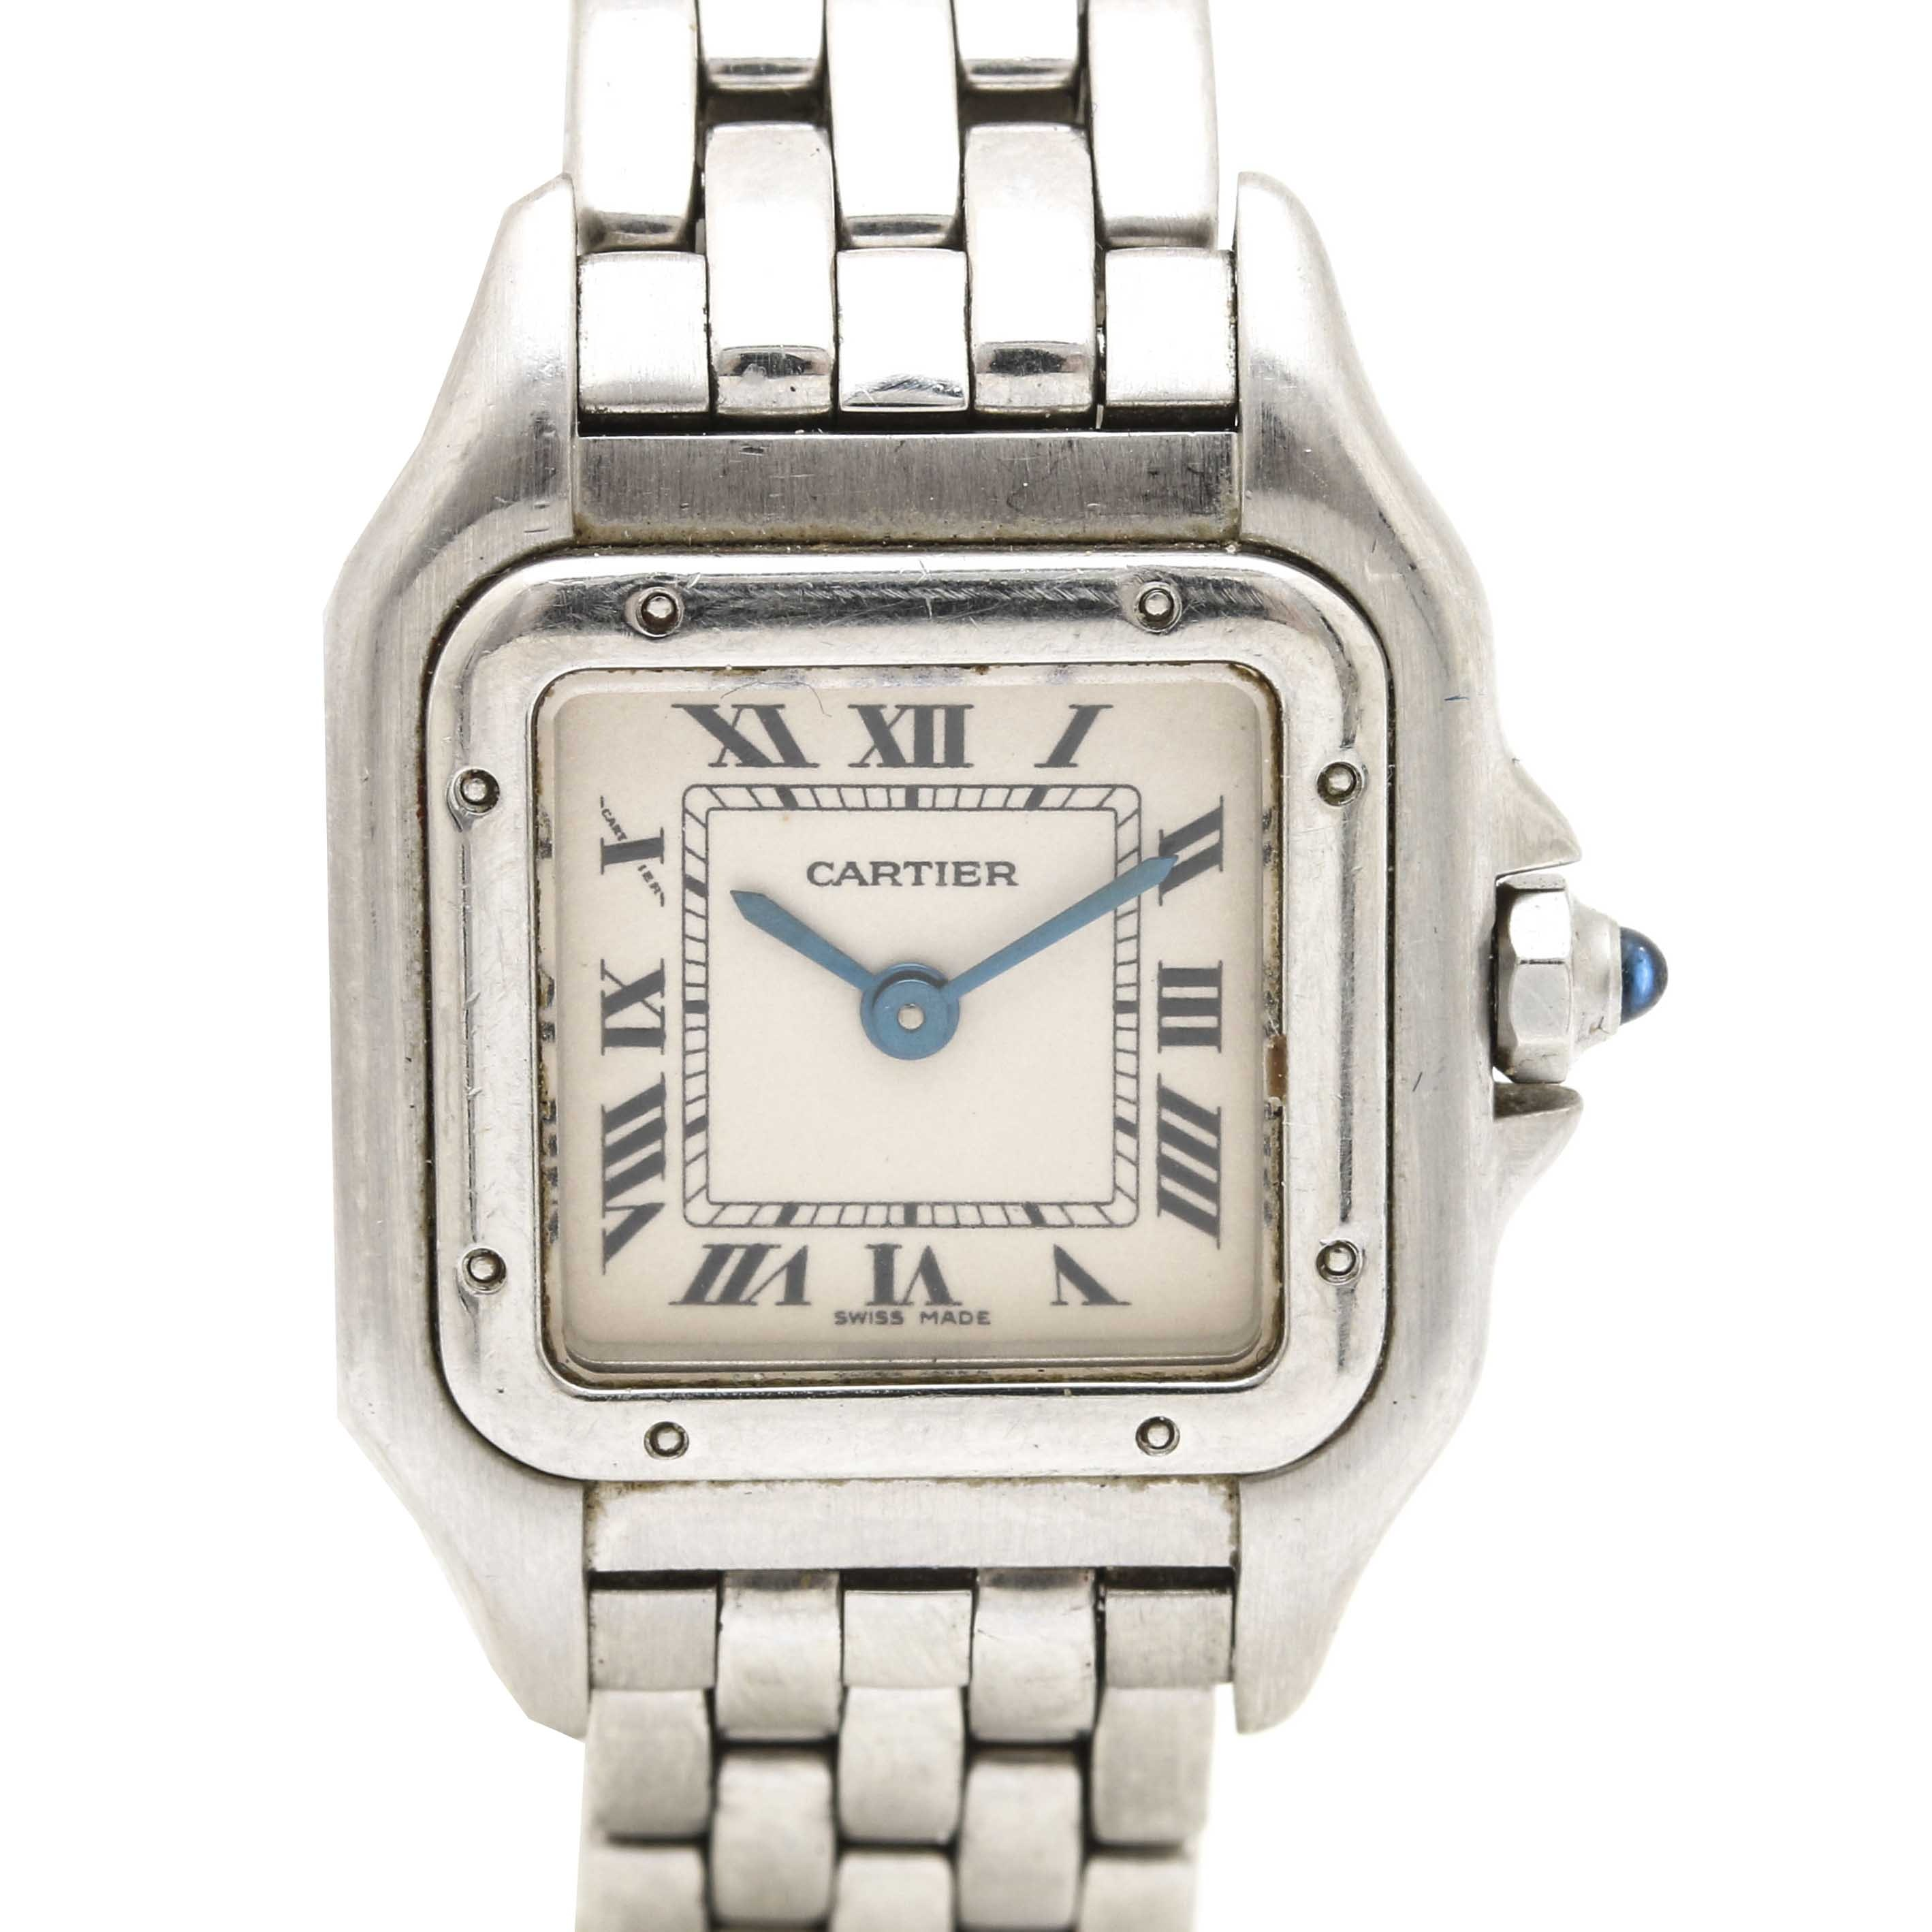 Cartier Stainless Steel Analog Wristwatch